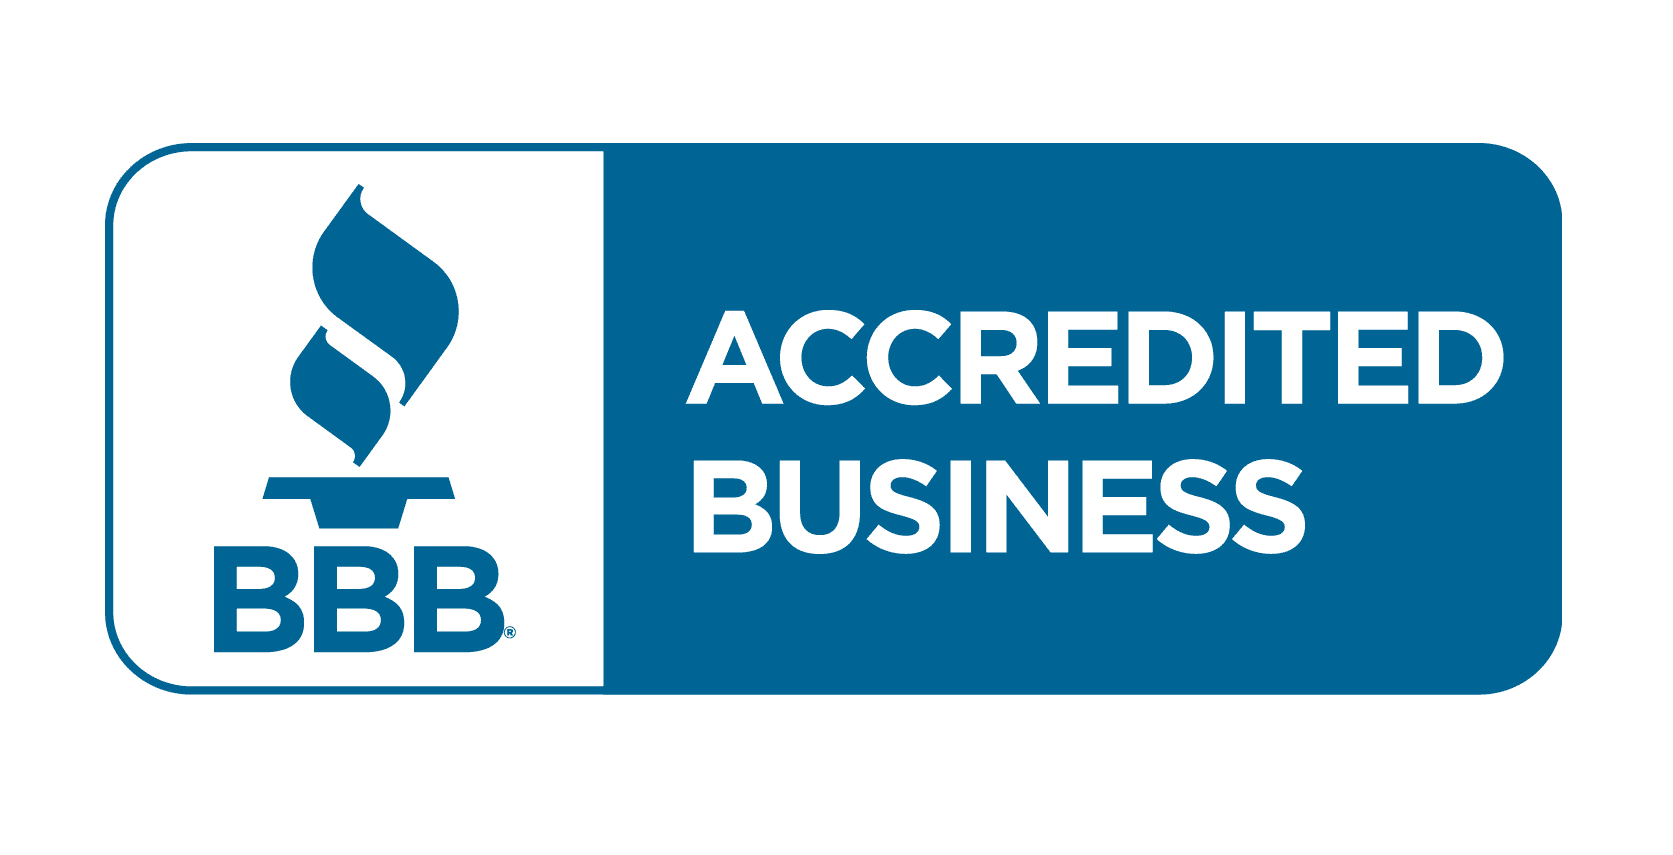 BBB- logo accredited